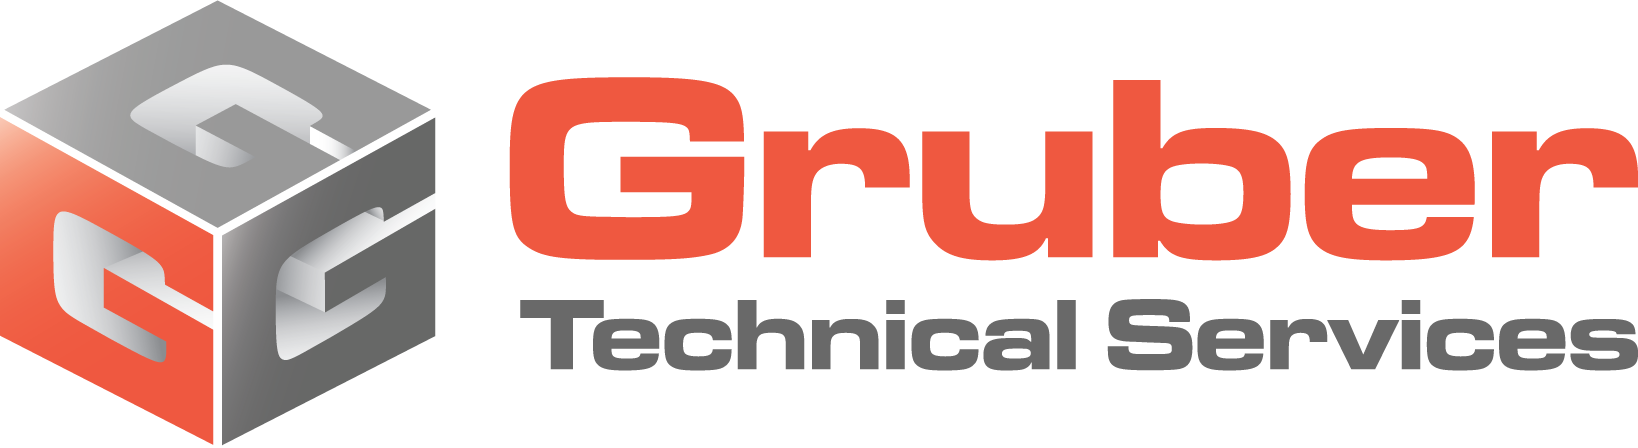 https://gruber.com/wp-content/uploads/2019/08/Gruber-Technical-Services_2.png